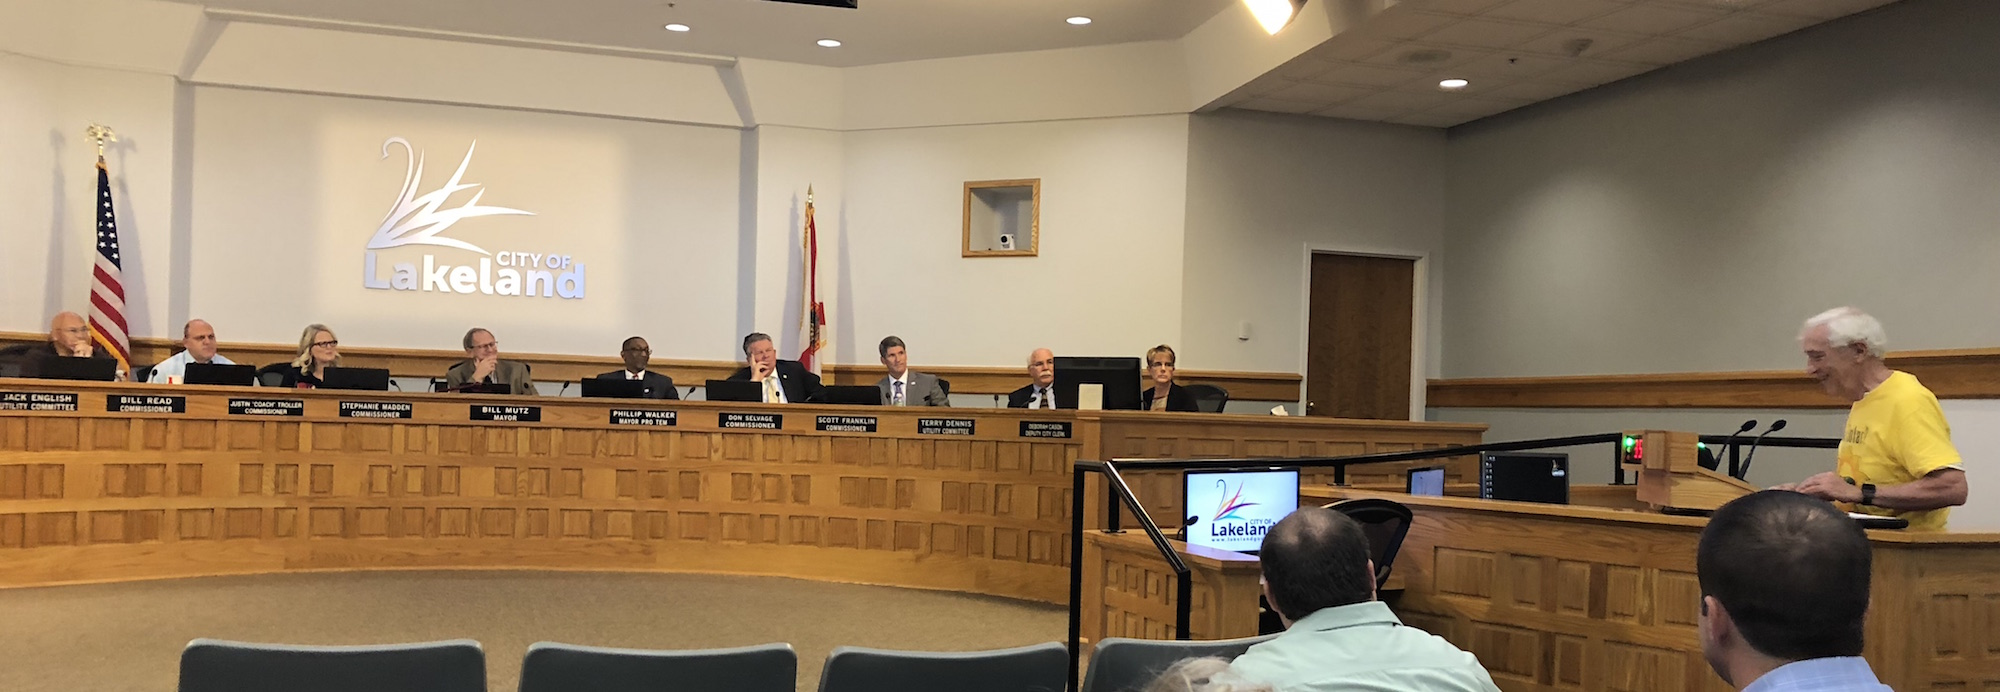 Don't let Lakeland Electric tax the sun | Solar United Neighbors